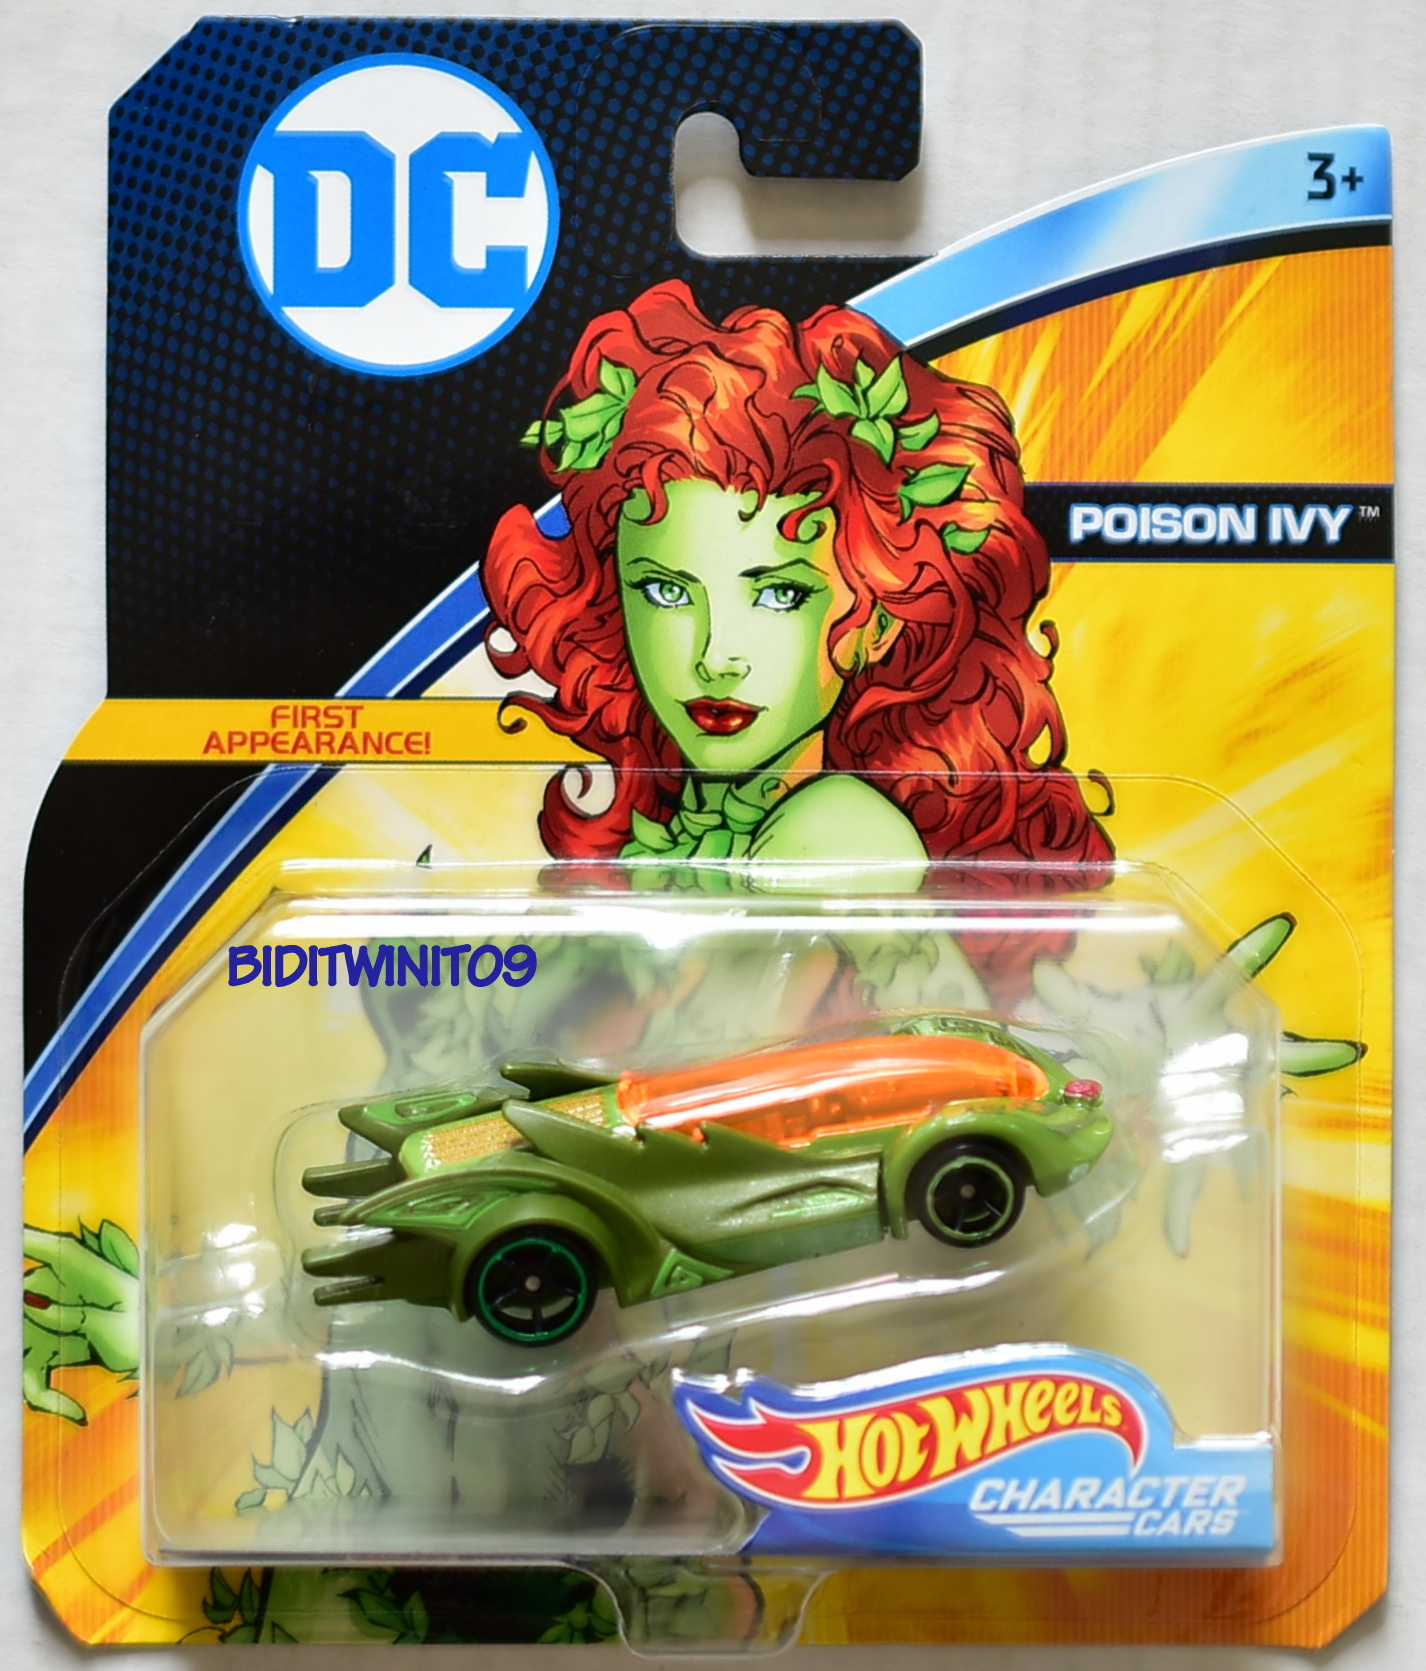 HOT WHEELS DC COMICS POISON IVY FIRST APPEARANCE CHARACTER CARS